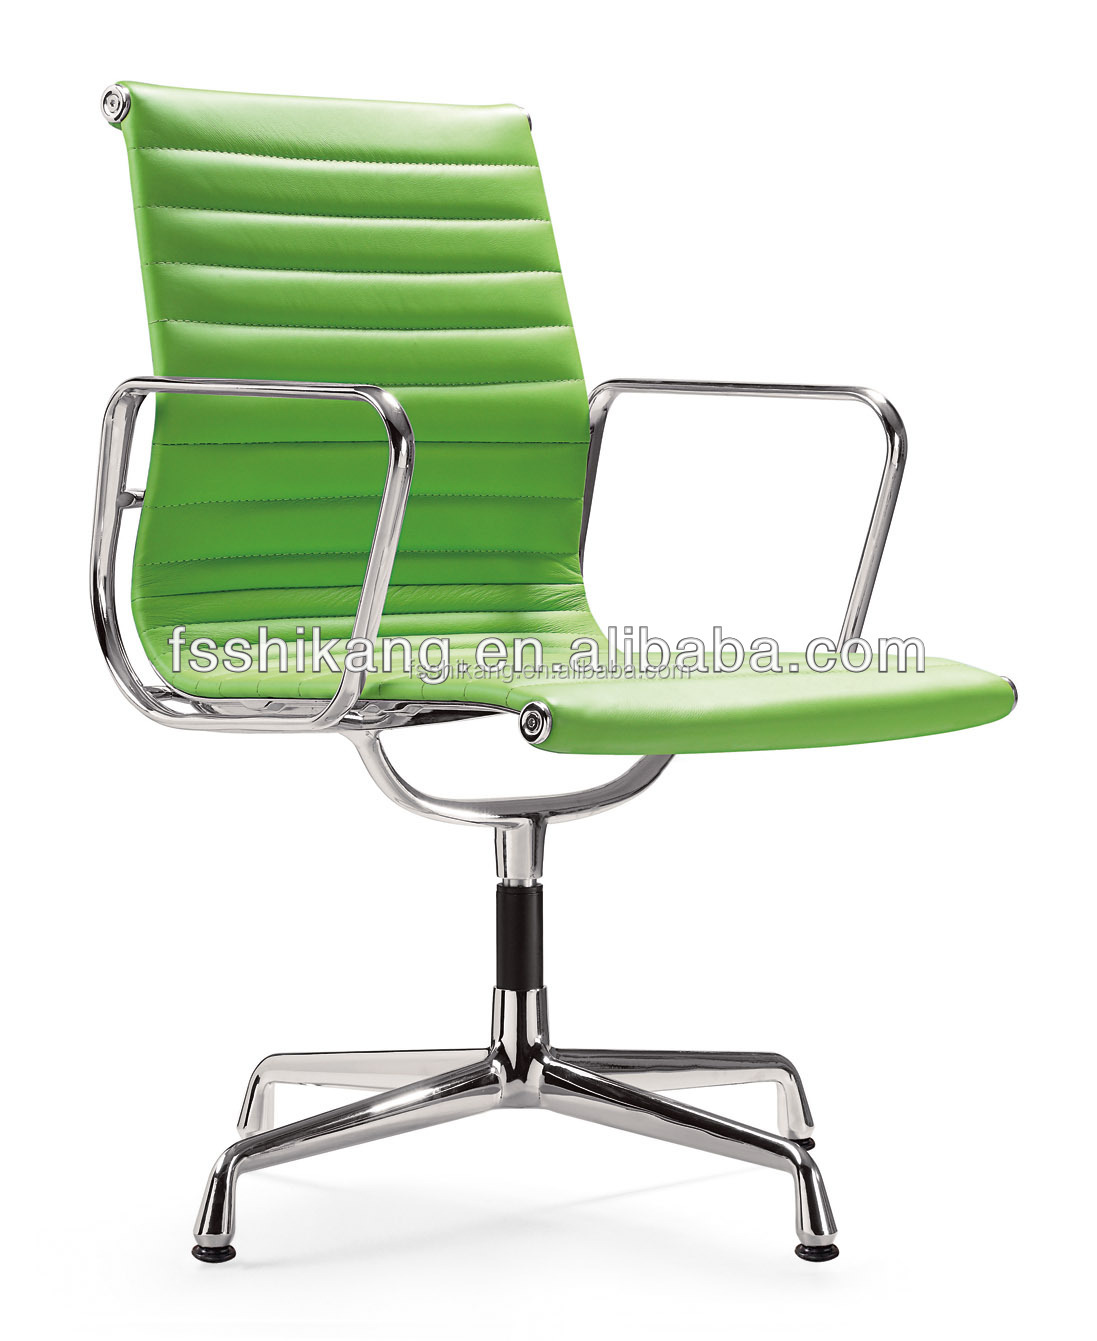 guangdong four leg hot best office chair 2014